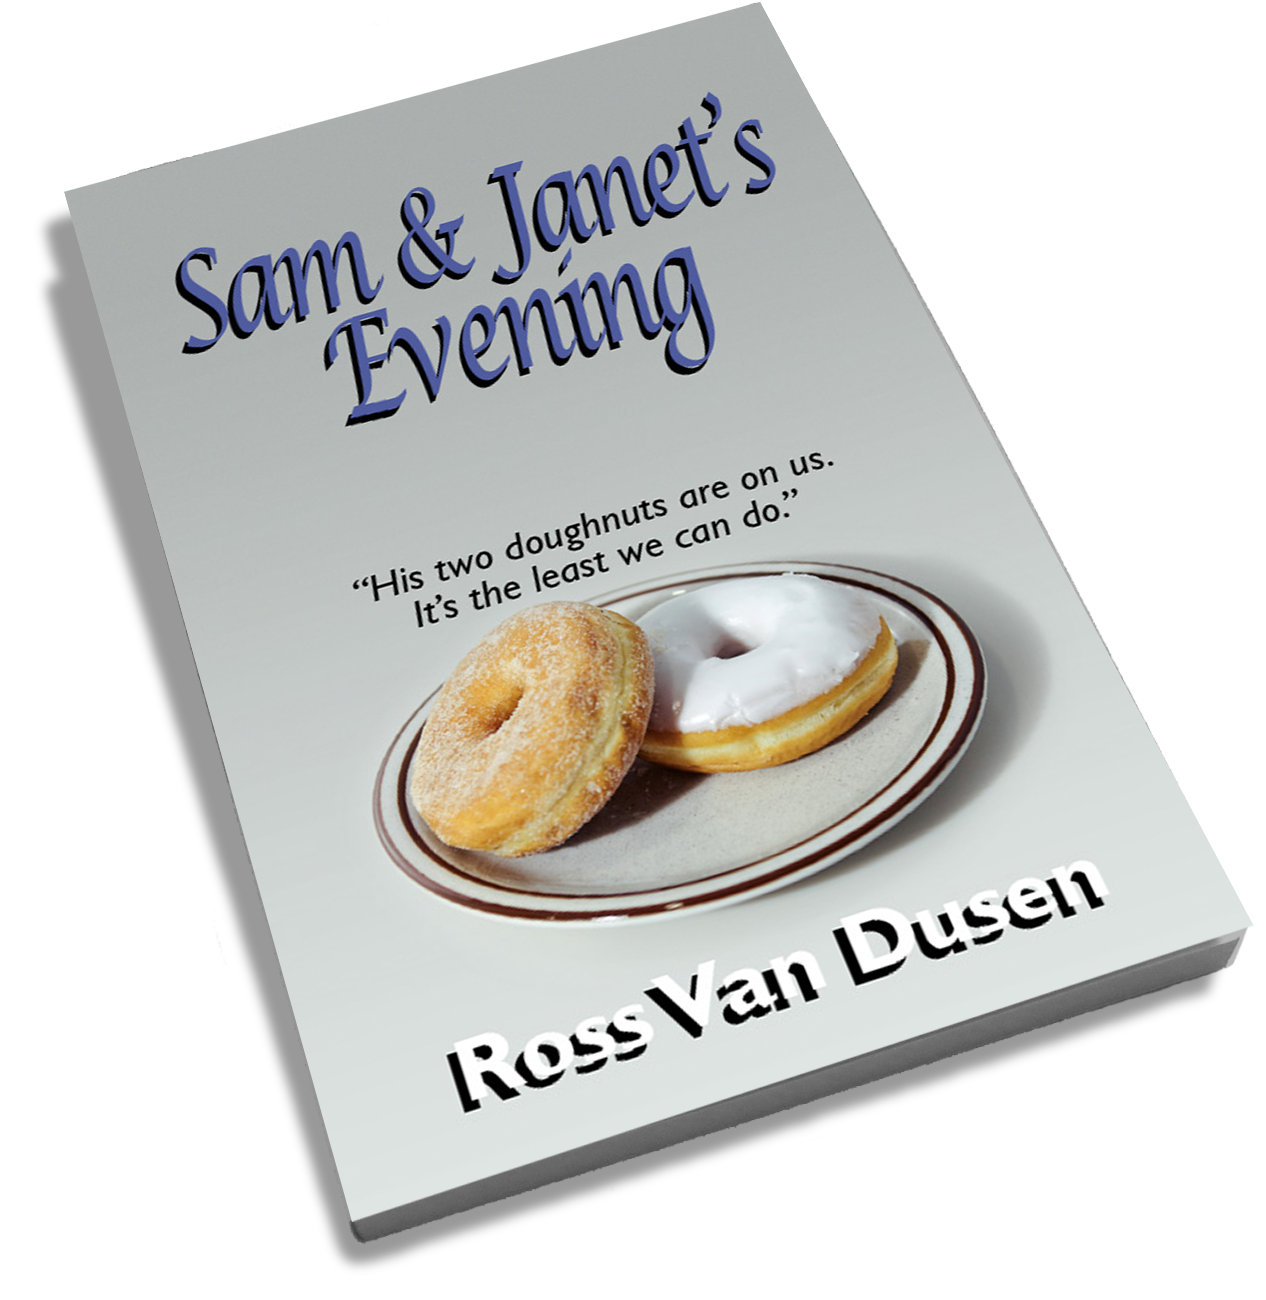 Sam & Janet's Evening book